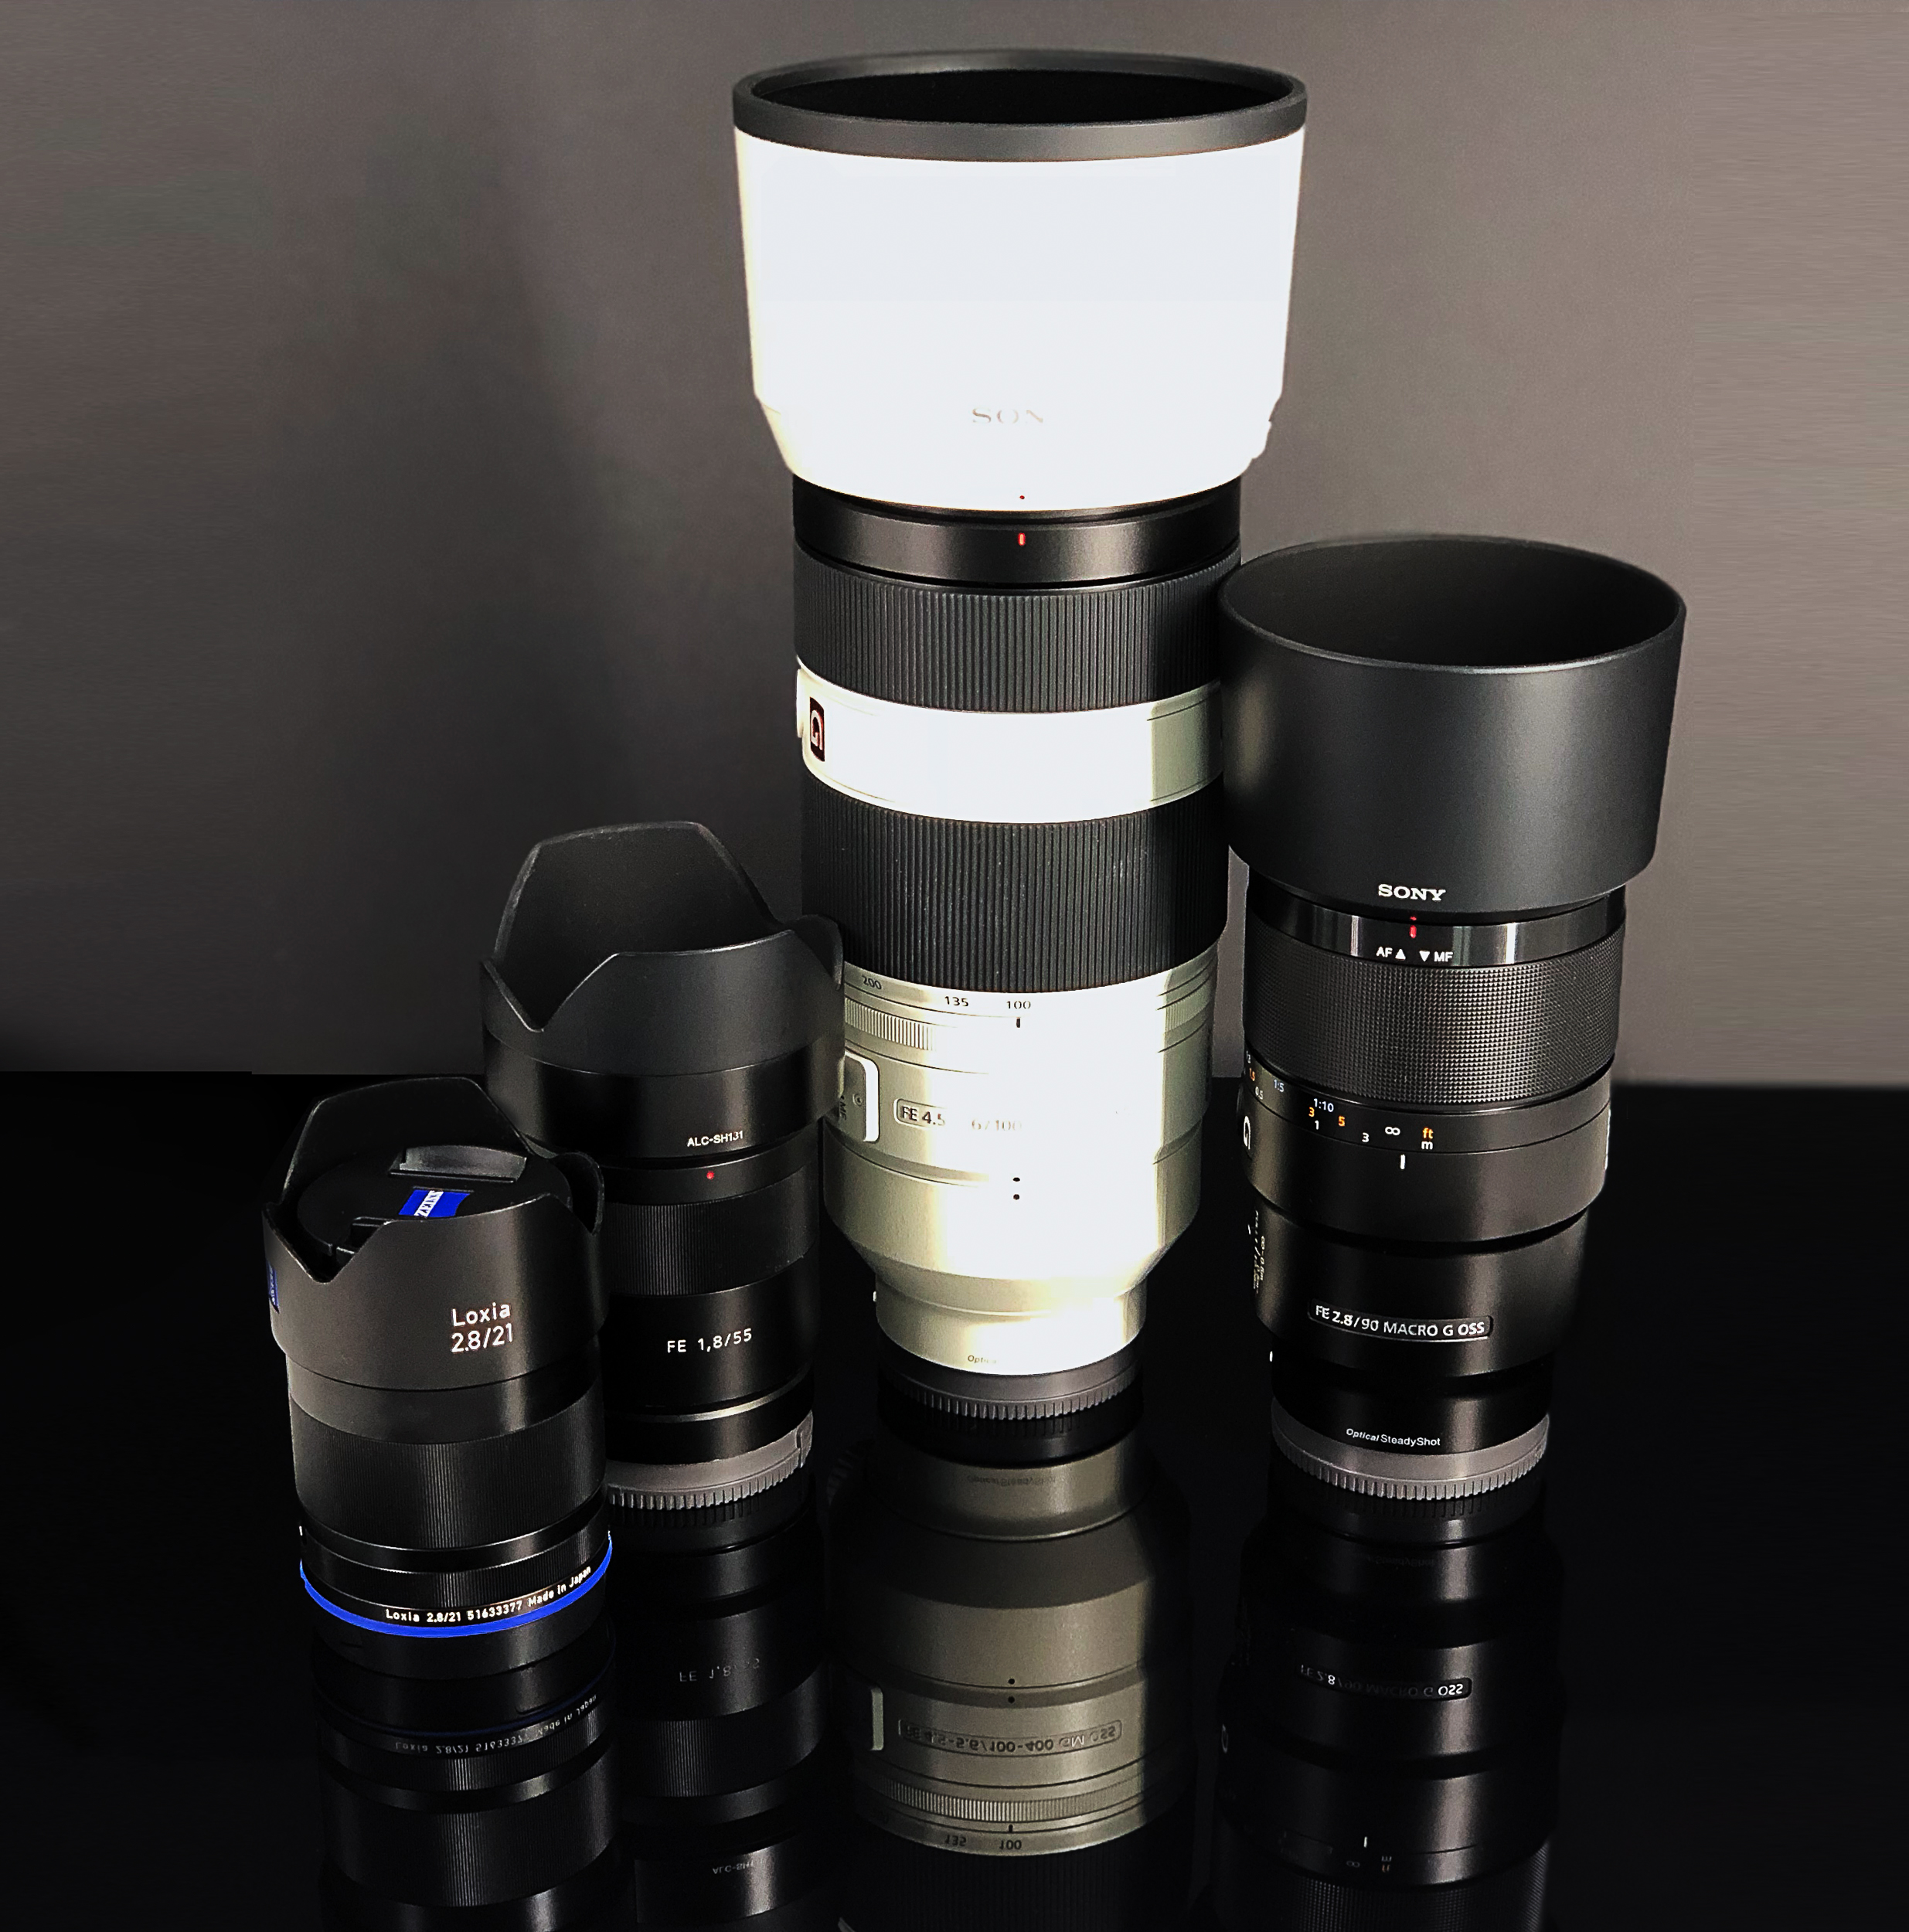 Zeiss Loxia 21mm f2.8, Sony 55mm f1.8, Sony 90mm f2.8 Macro, Sony GM 100-400mm f4.5-5.6